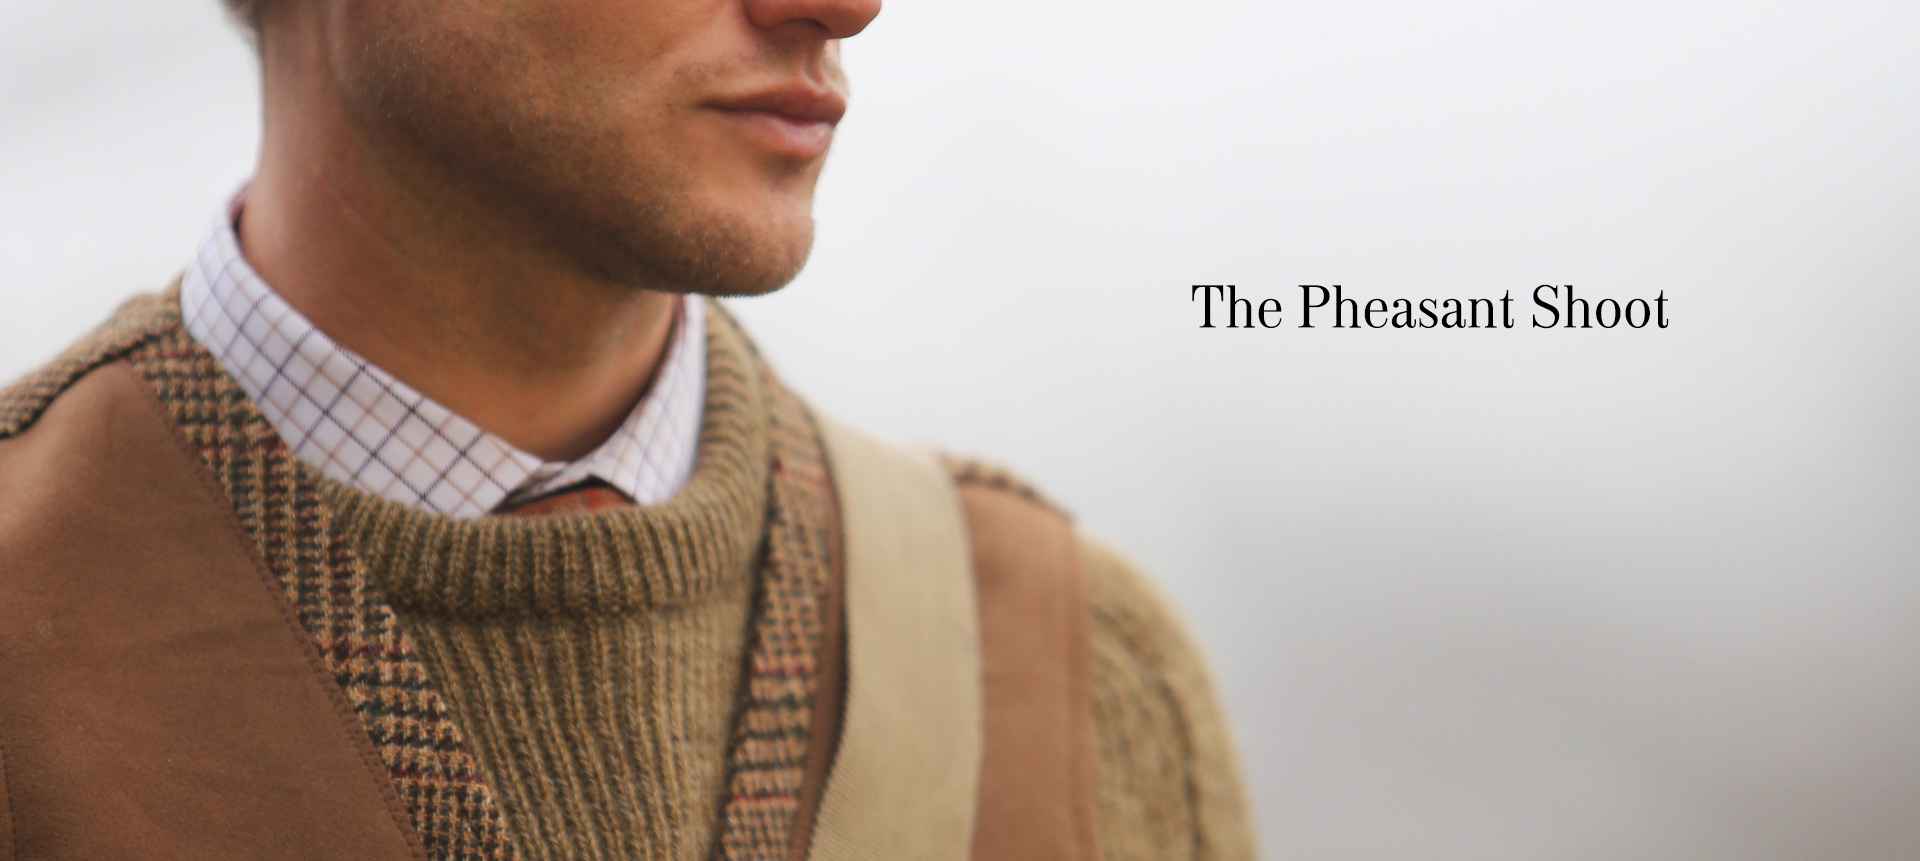 The Pheasant shoot clothing